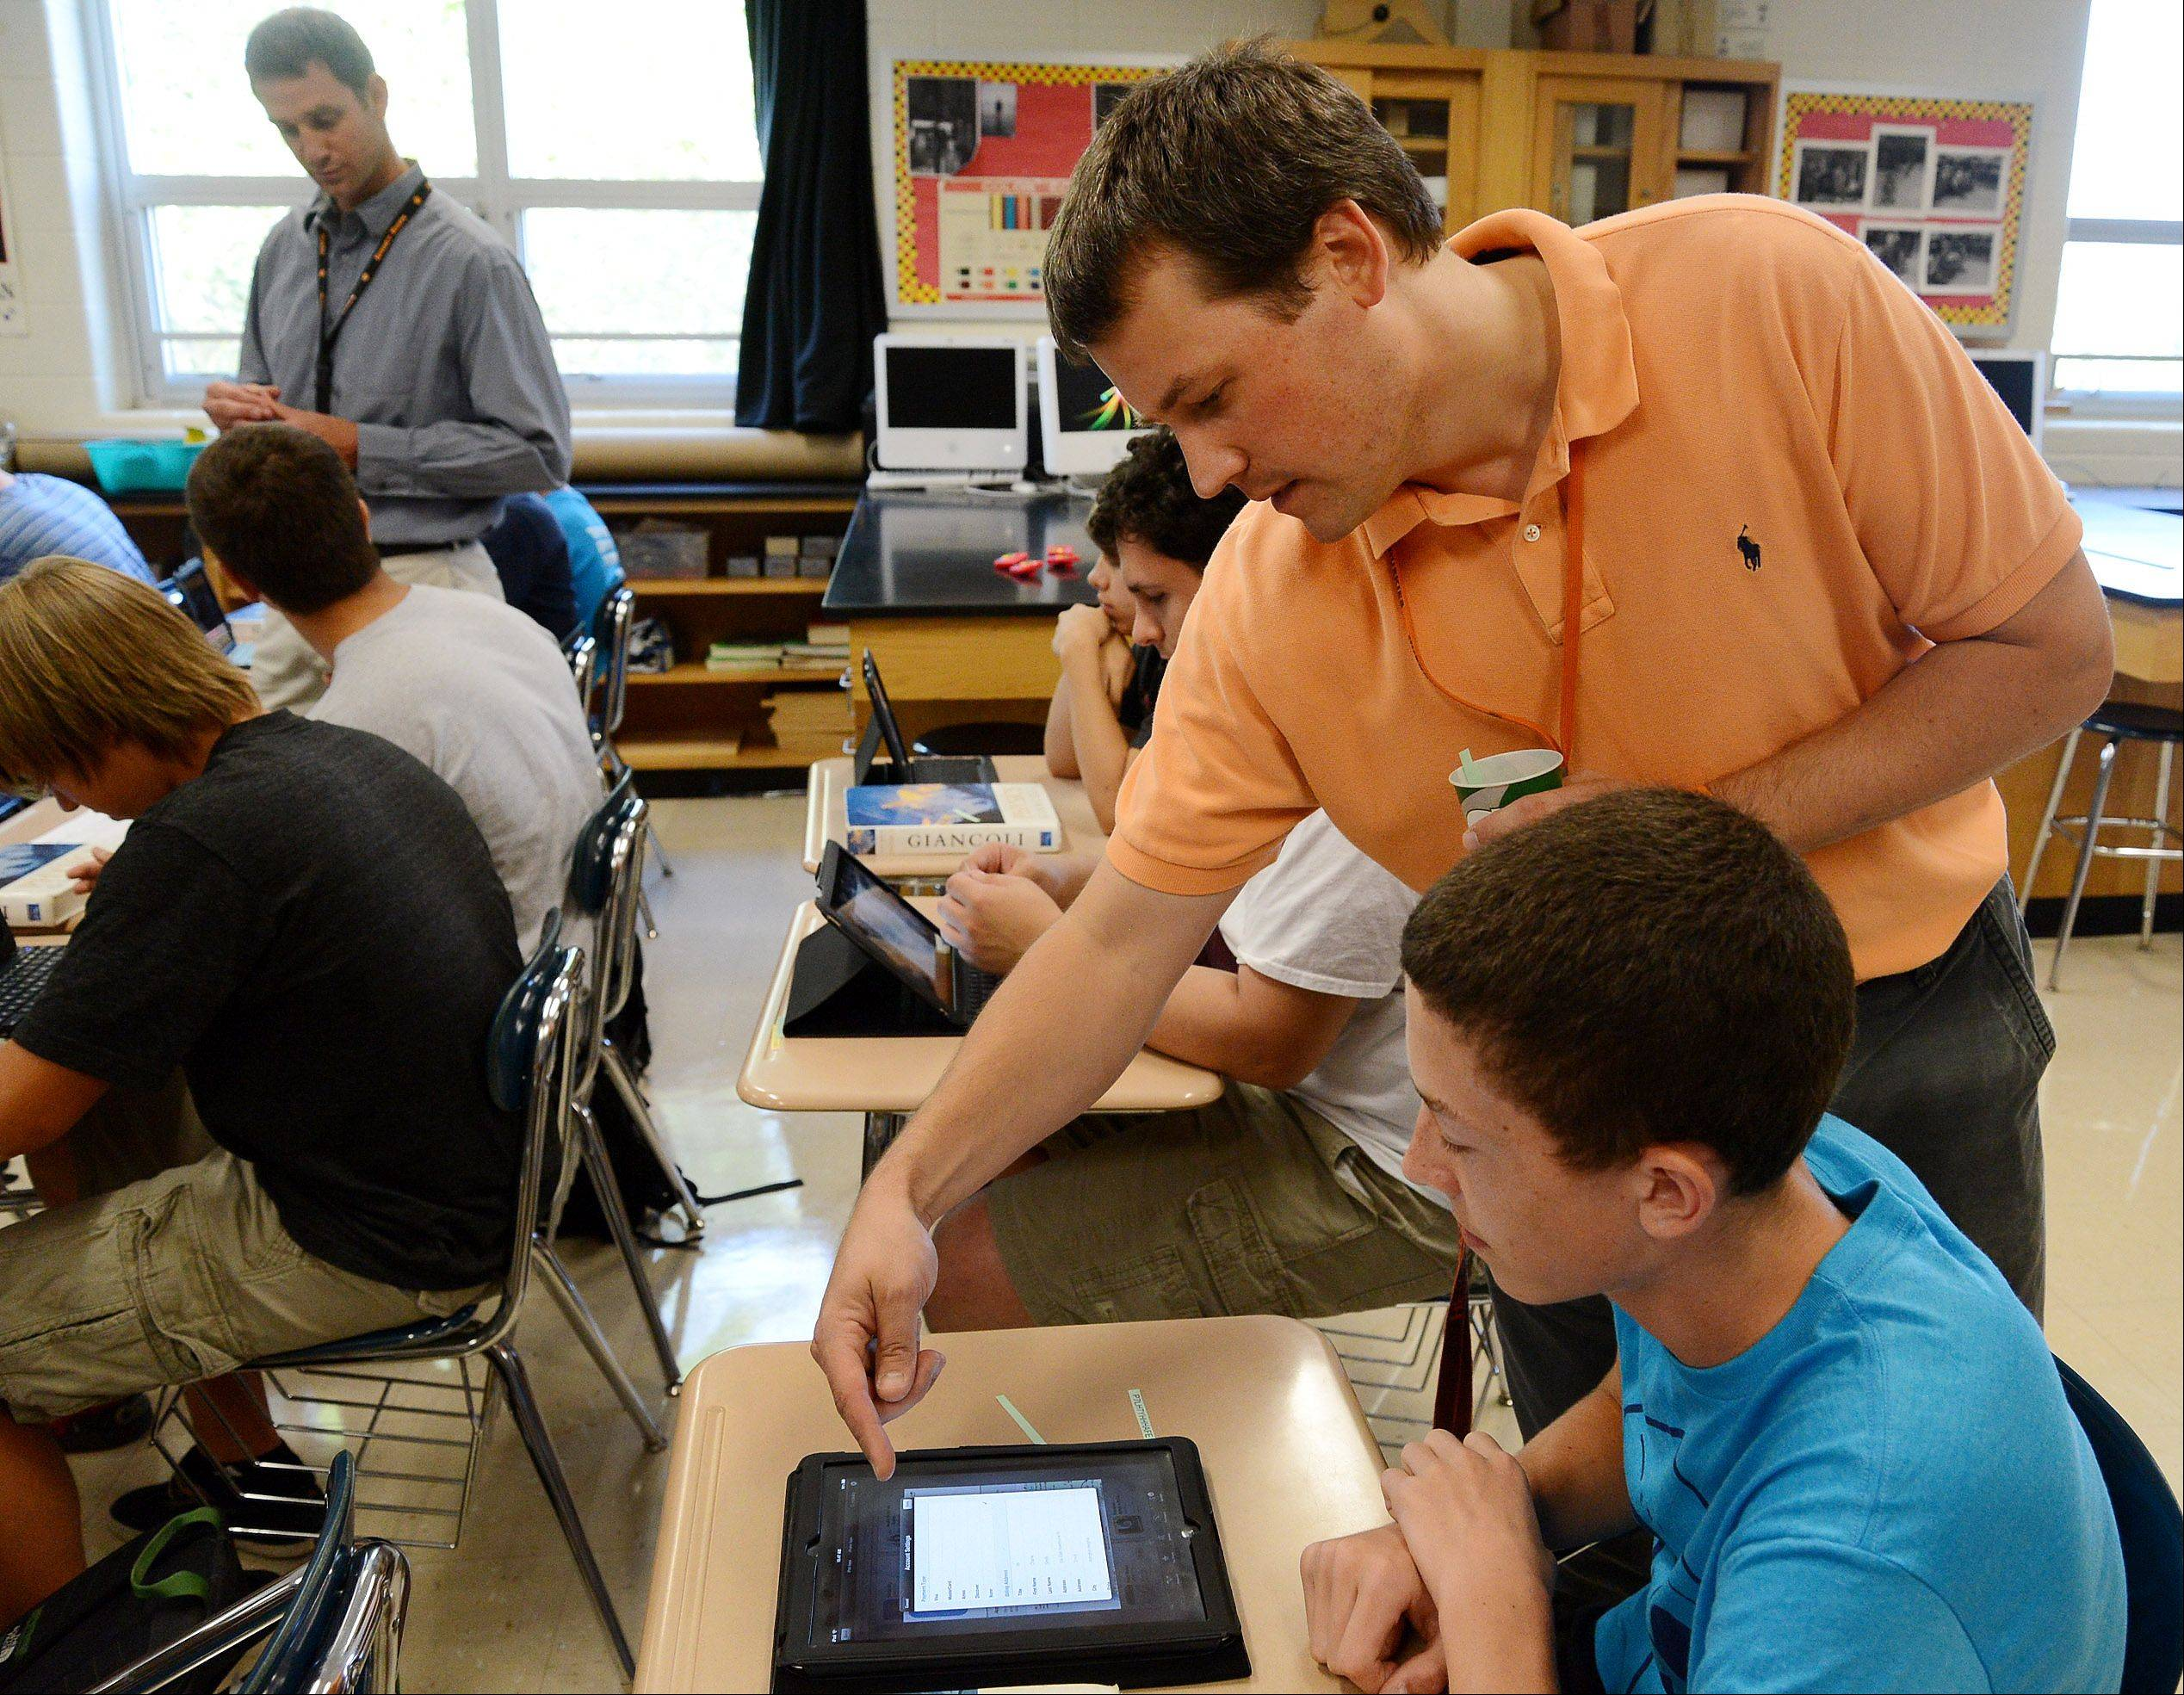 Honors physics teacher Jon Heintzelman helps Charlie Smith log into his iPad on the first day of classes at Hersey High School.